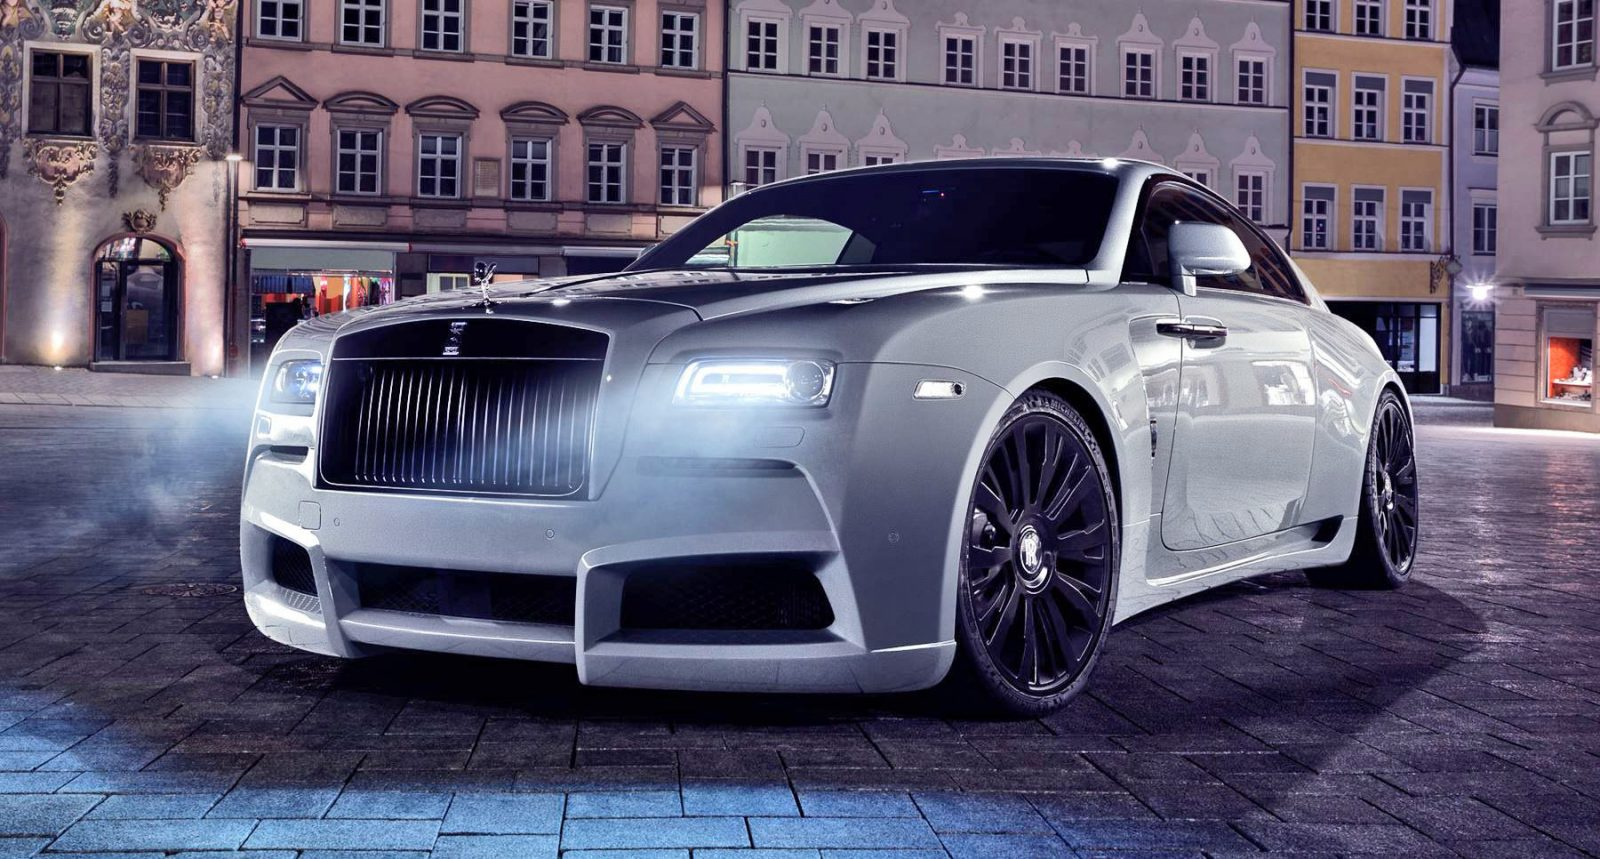 2019 Rolls Royce Dawn >> 2016 SPOFEC Rolls Royce Wraith OVERDOSE - 717HP Widebody Dream!